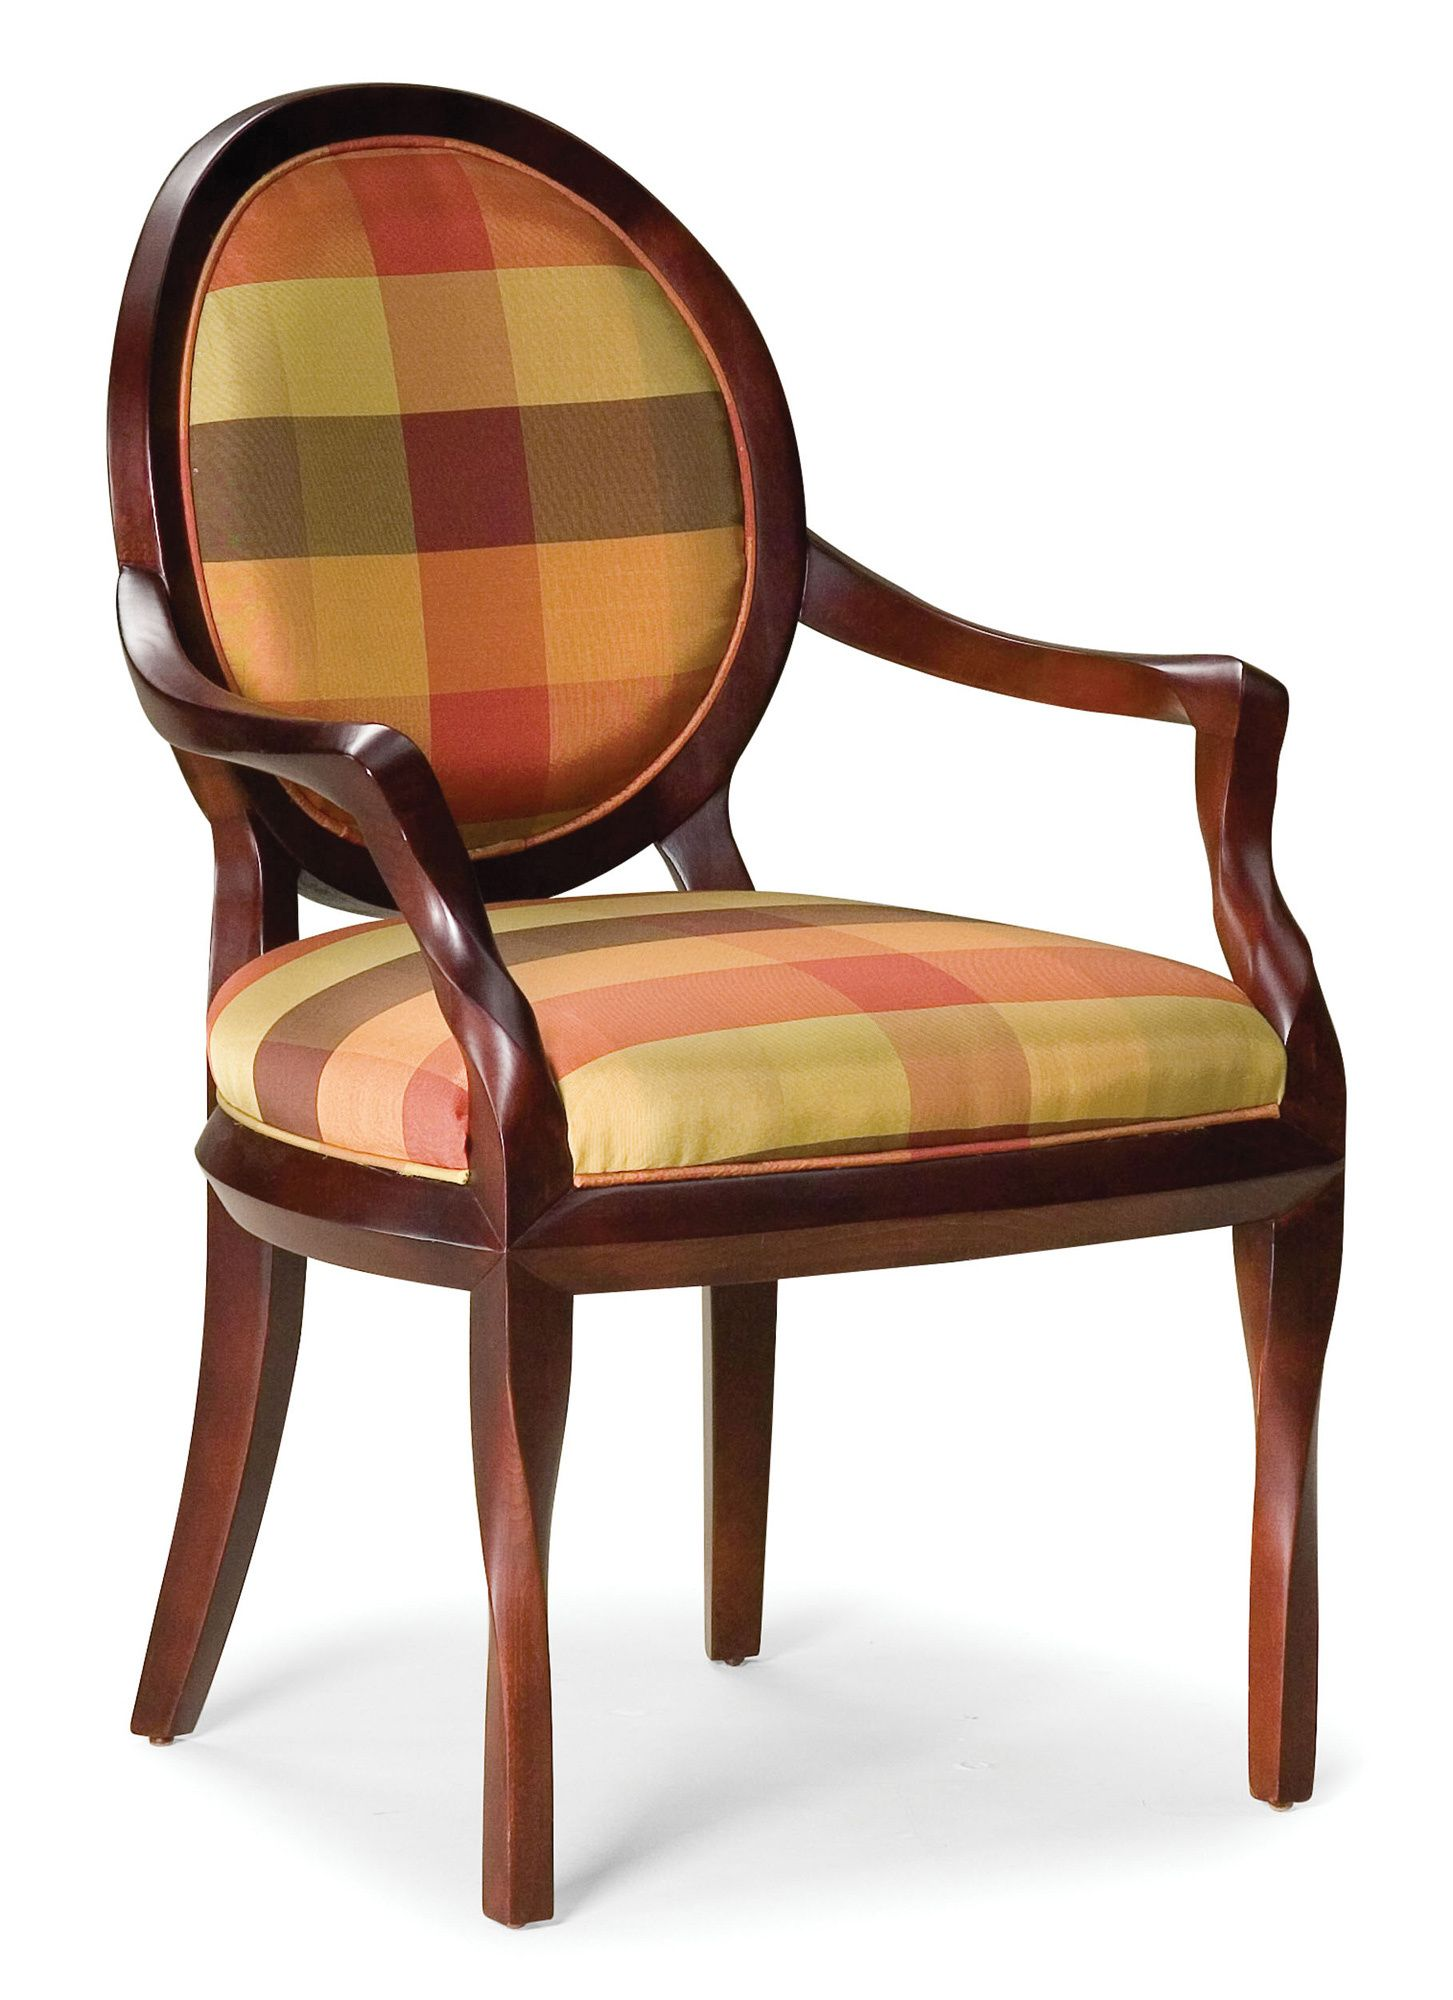 Charmant Occasional Chair | Fairfield Chair Company | Home Gallery Stores